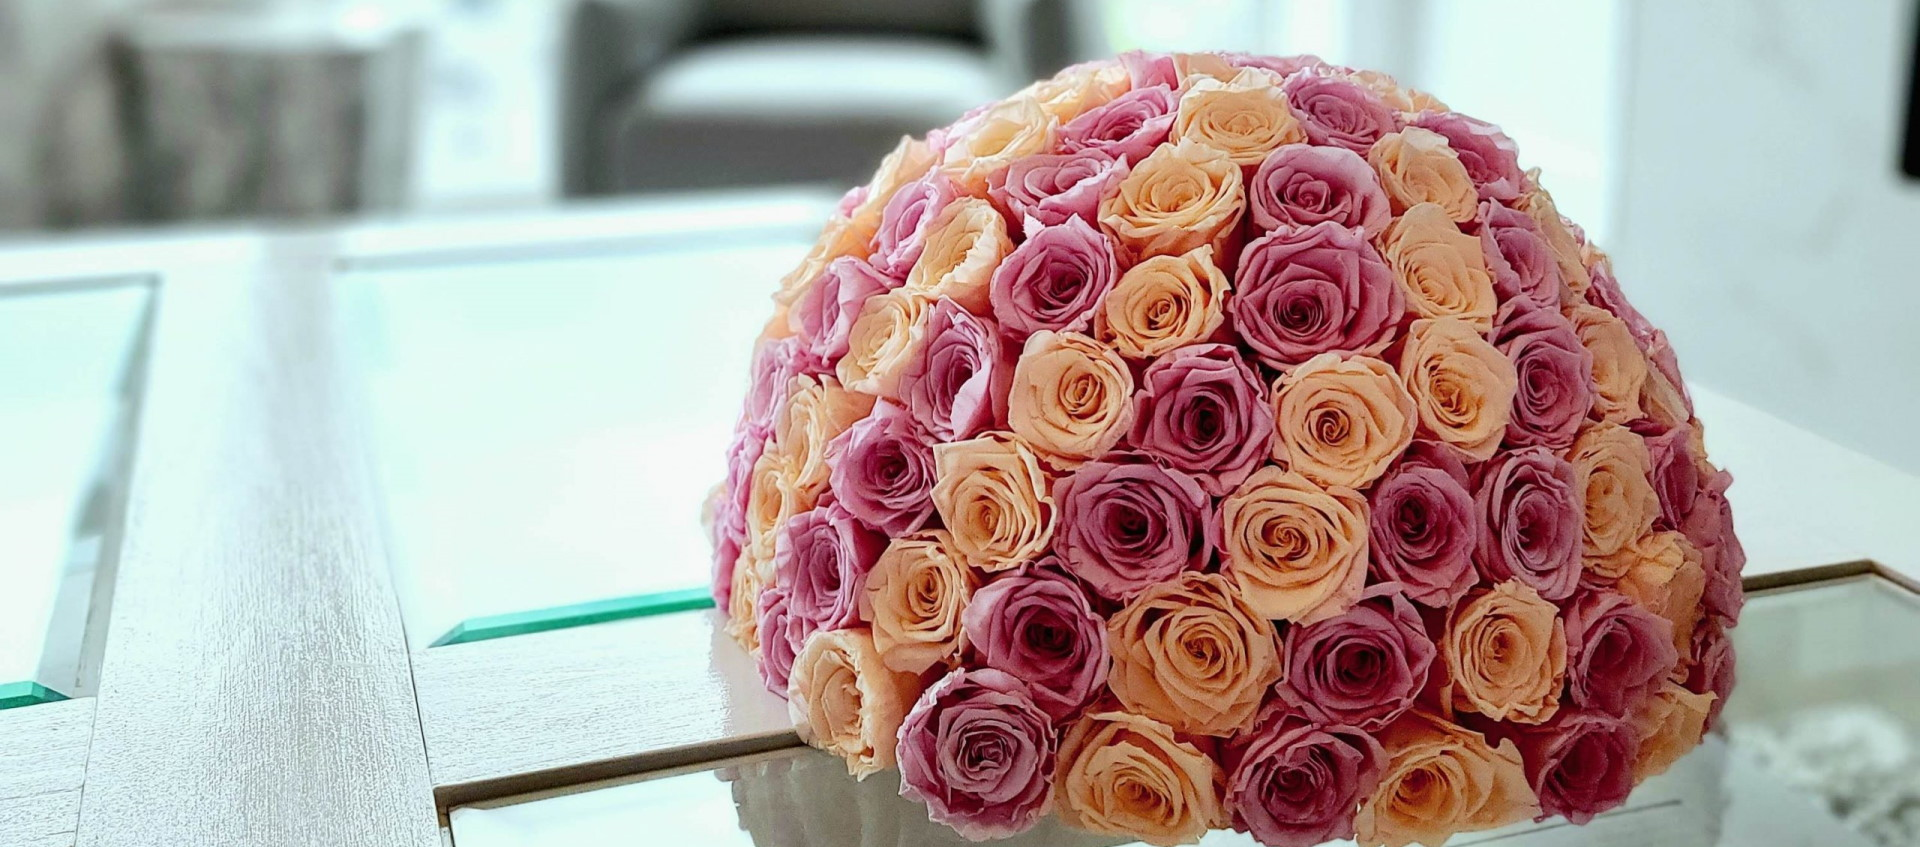 Pink and Peach Forever Roses - El Luna